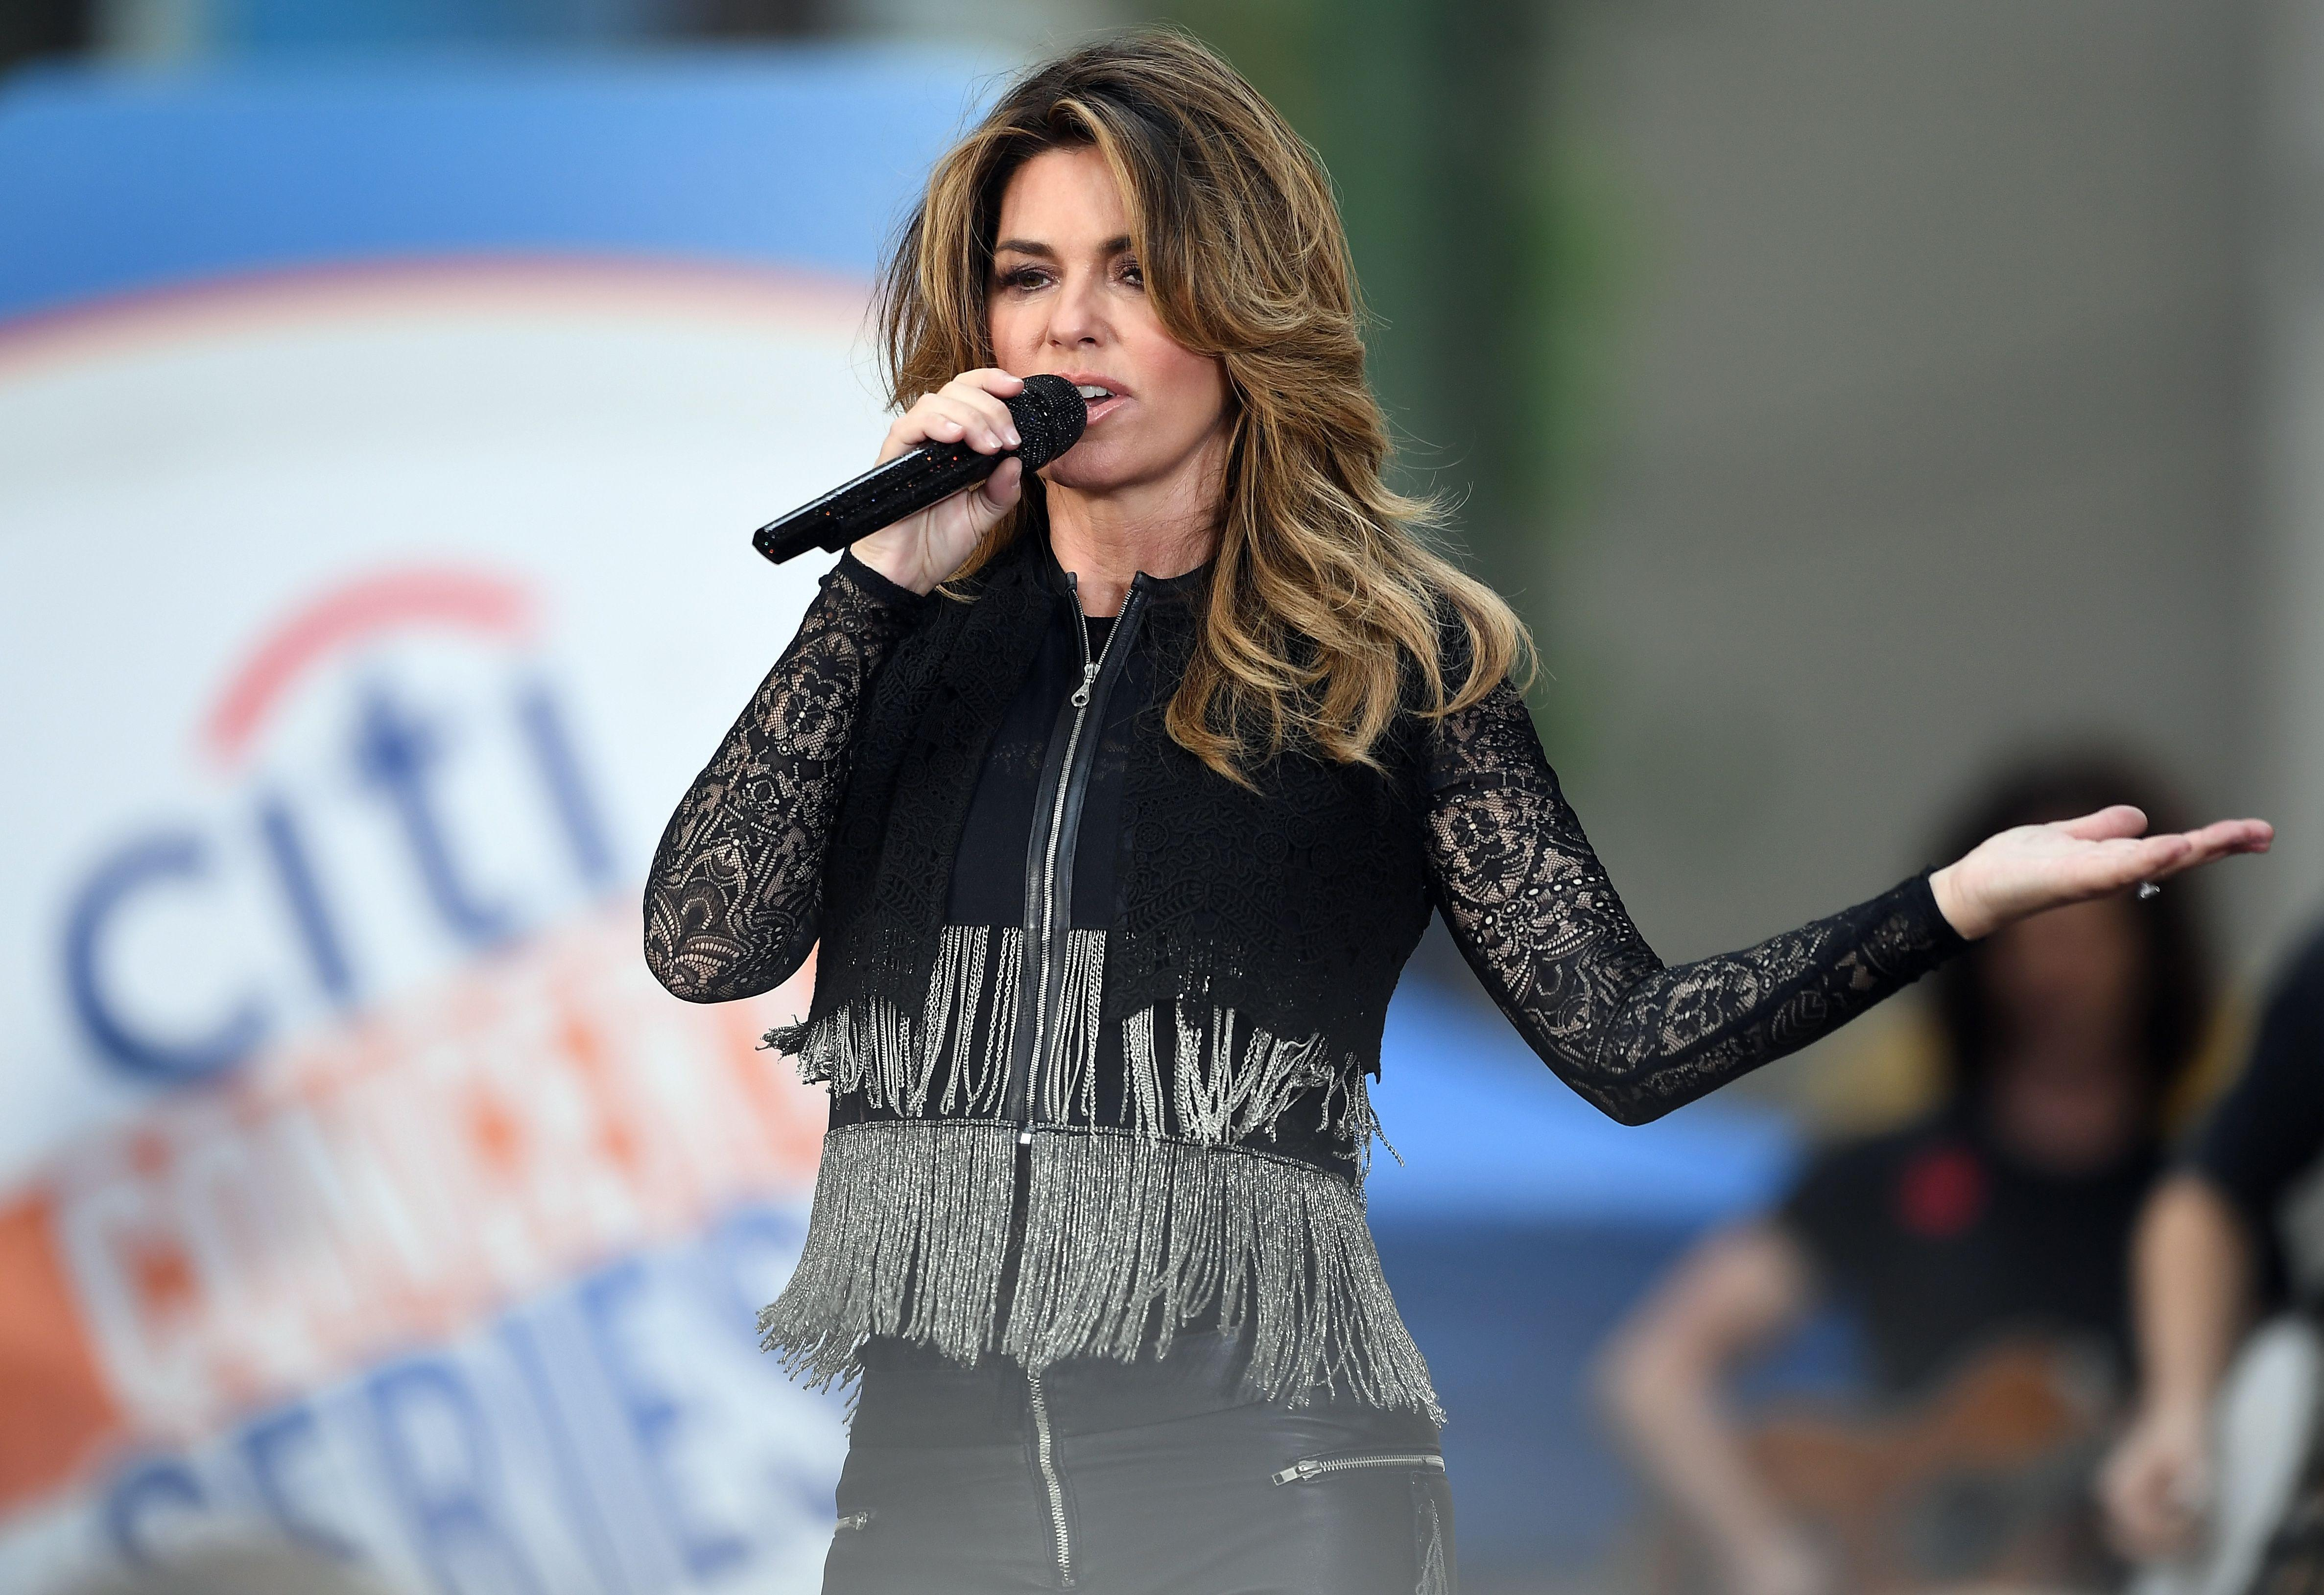 Shania Twain Interview on 'Real Country' & Finding a ... |Shania Twain